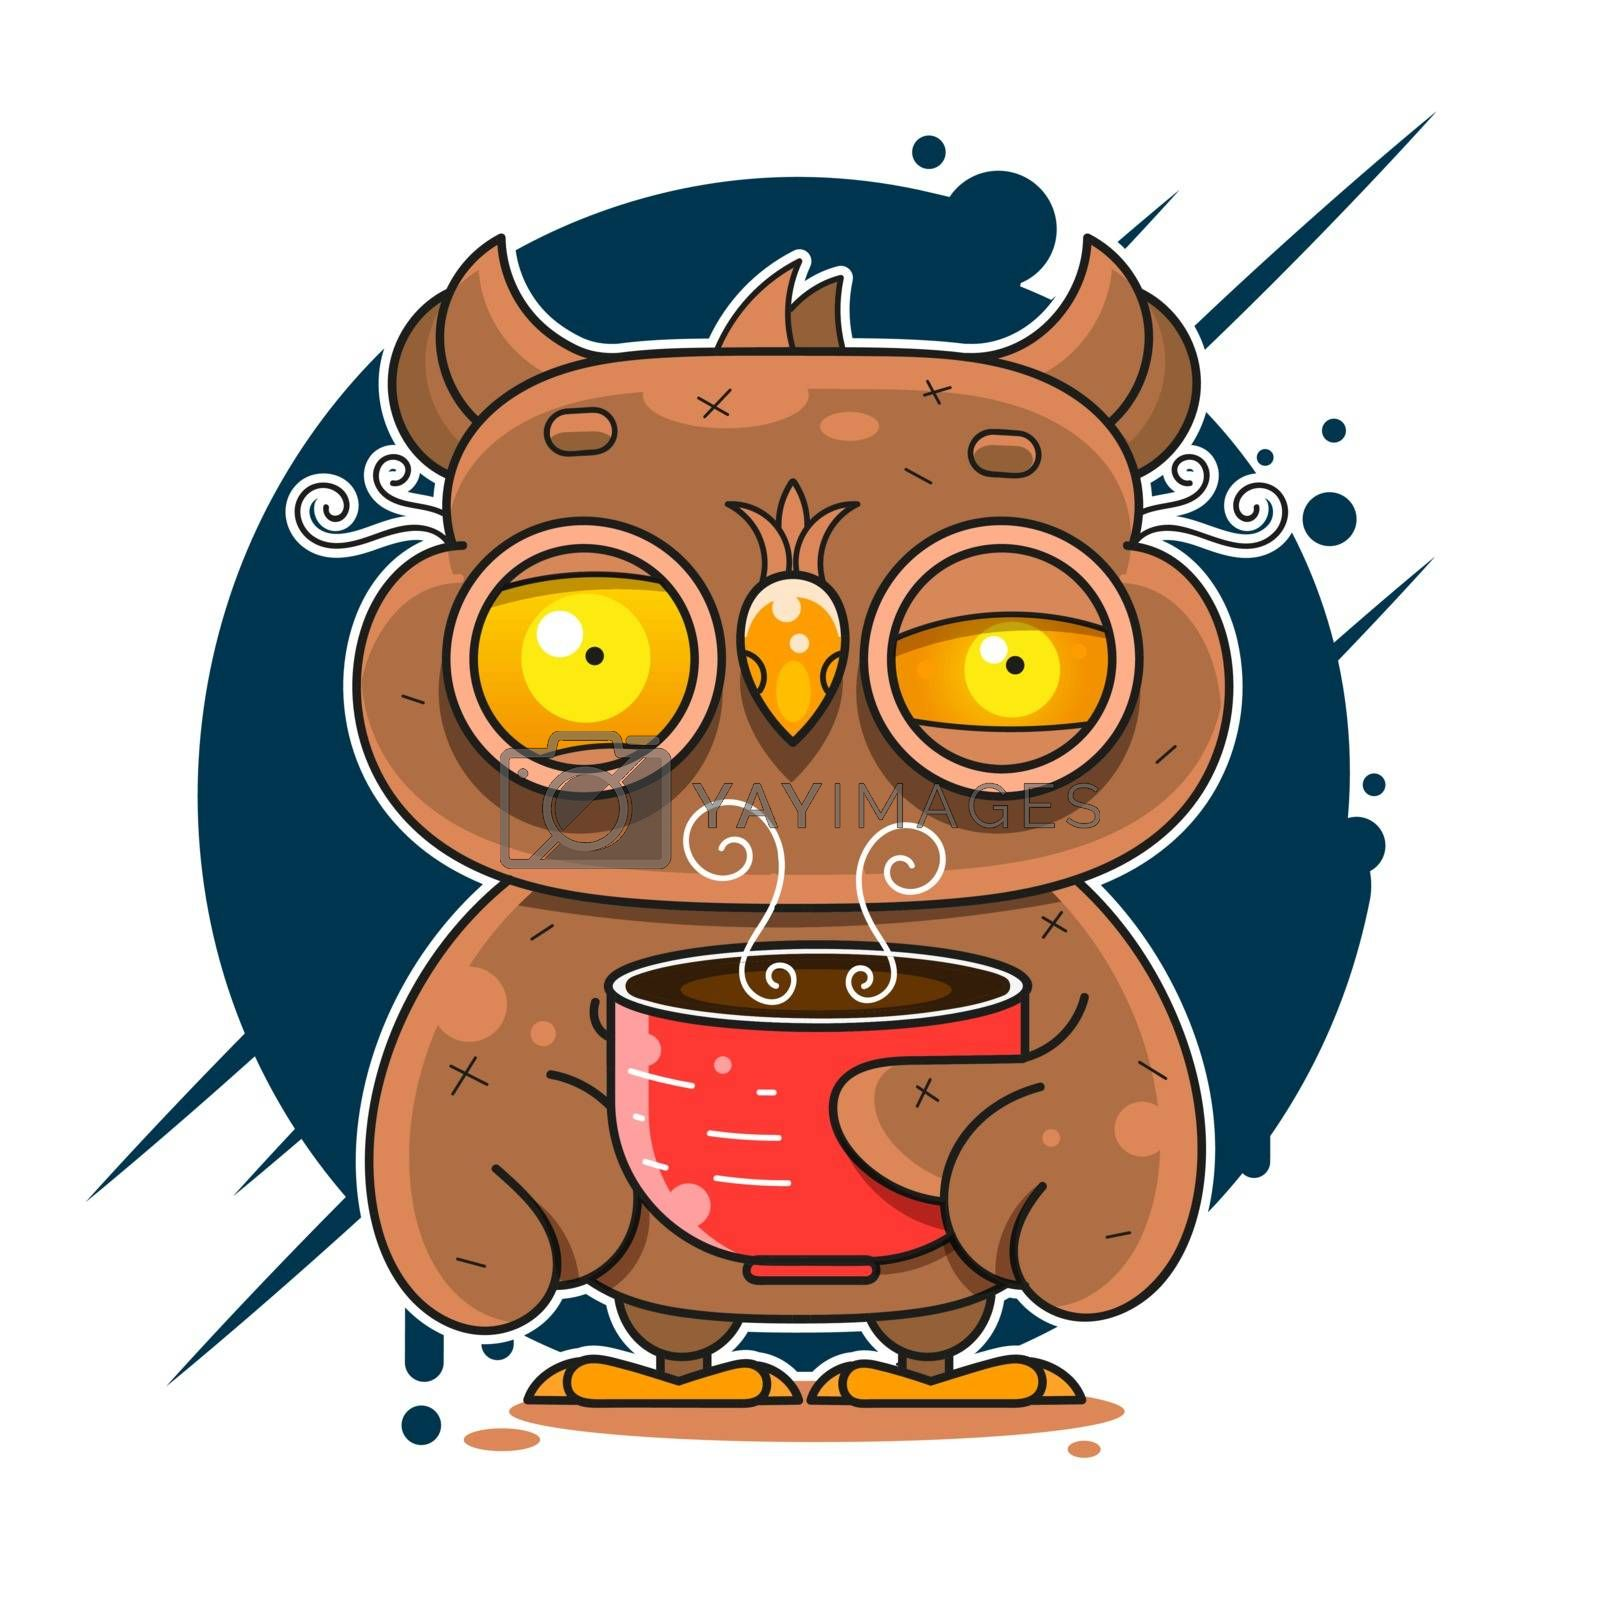 Owl Drinking Coffee And Can't Sleep Vector Flat Style Illustration Suitable For Greeting Card, Poster Or T-shirt Printing.